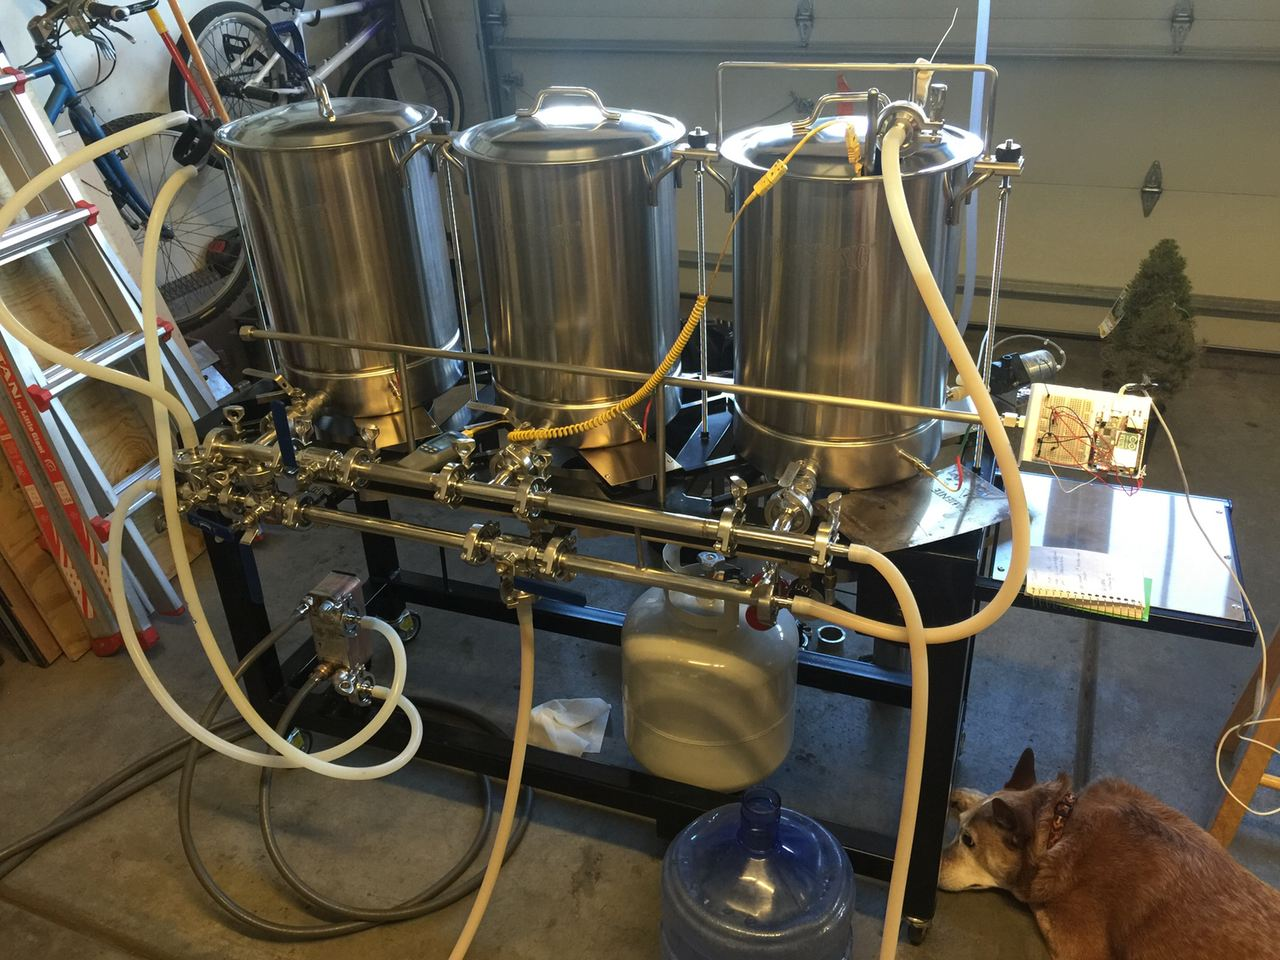 Brewbench is a home brewing monitor system with an